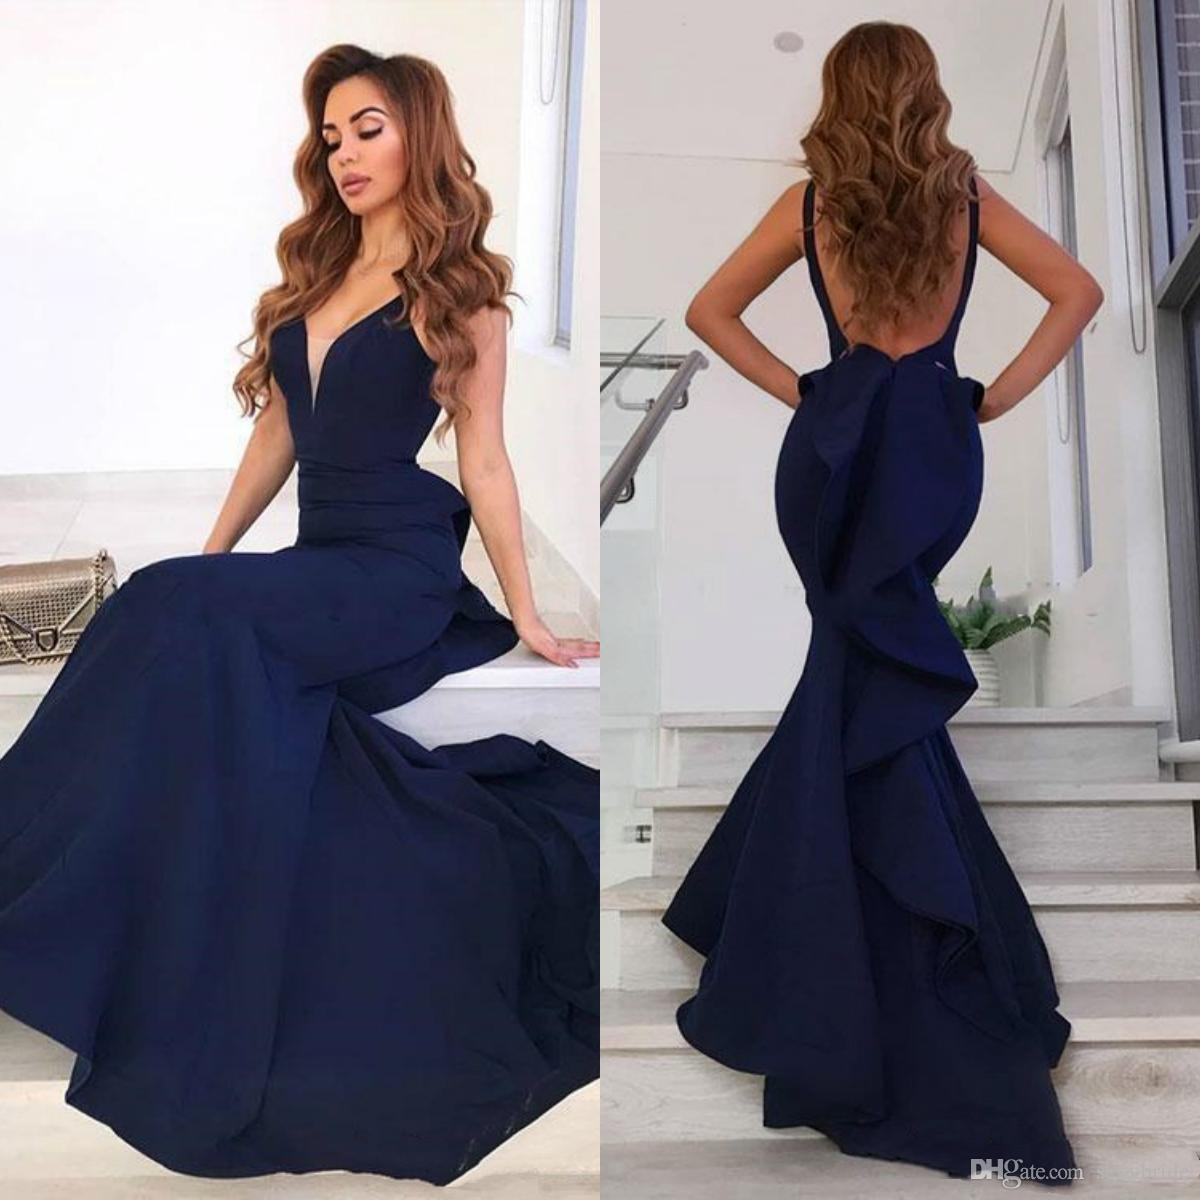 c32212983289 Sexy Navy Blue Mermaid Prom Dresses Long V Neck Backless Sweep Train  Ruffles Plus Size Satin Evening Formal Party Gowns Robes De Soirée Prom  Dress For Plus ...